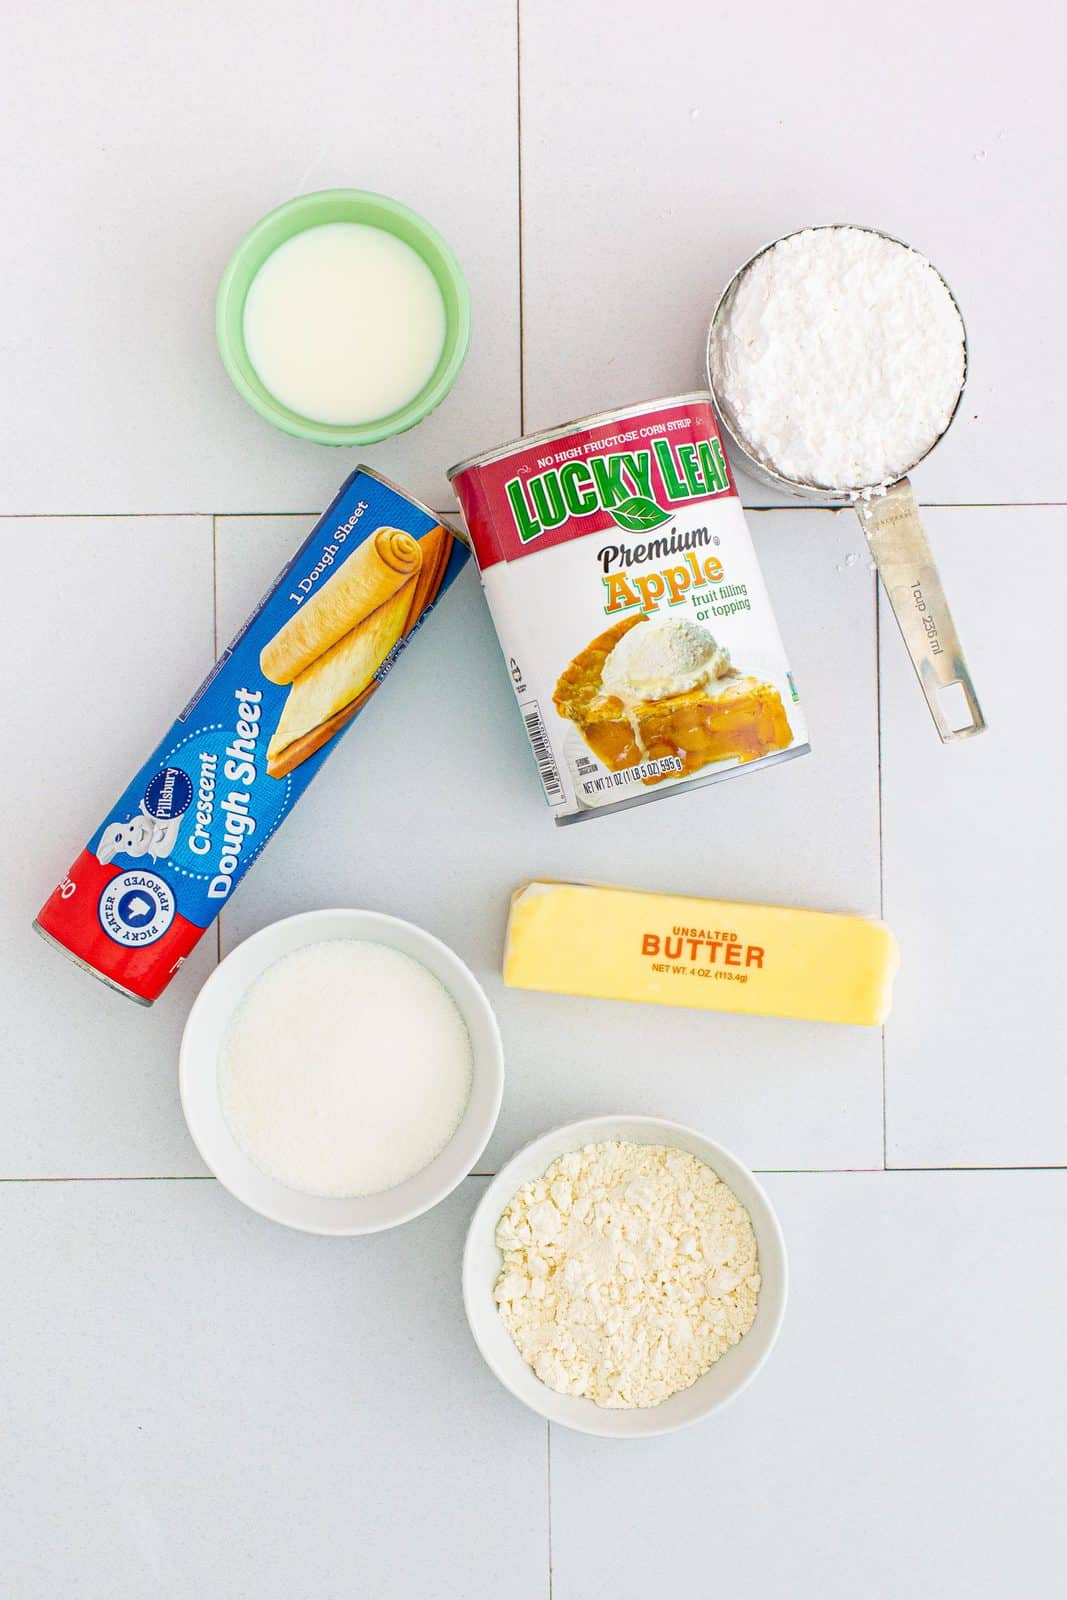 Ingredients needed: canned apple pie filling, granulated sugar, all-purpose flour, unsalted butter, crescent roll dough sheet, powdered sugar and whole milk.